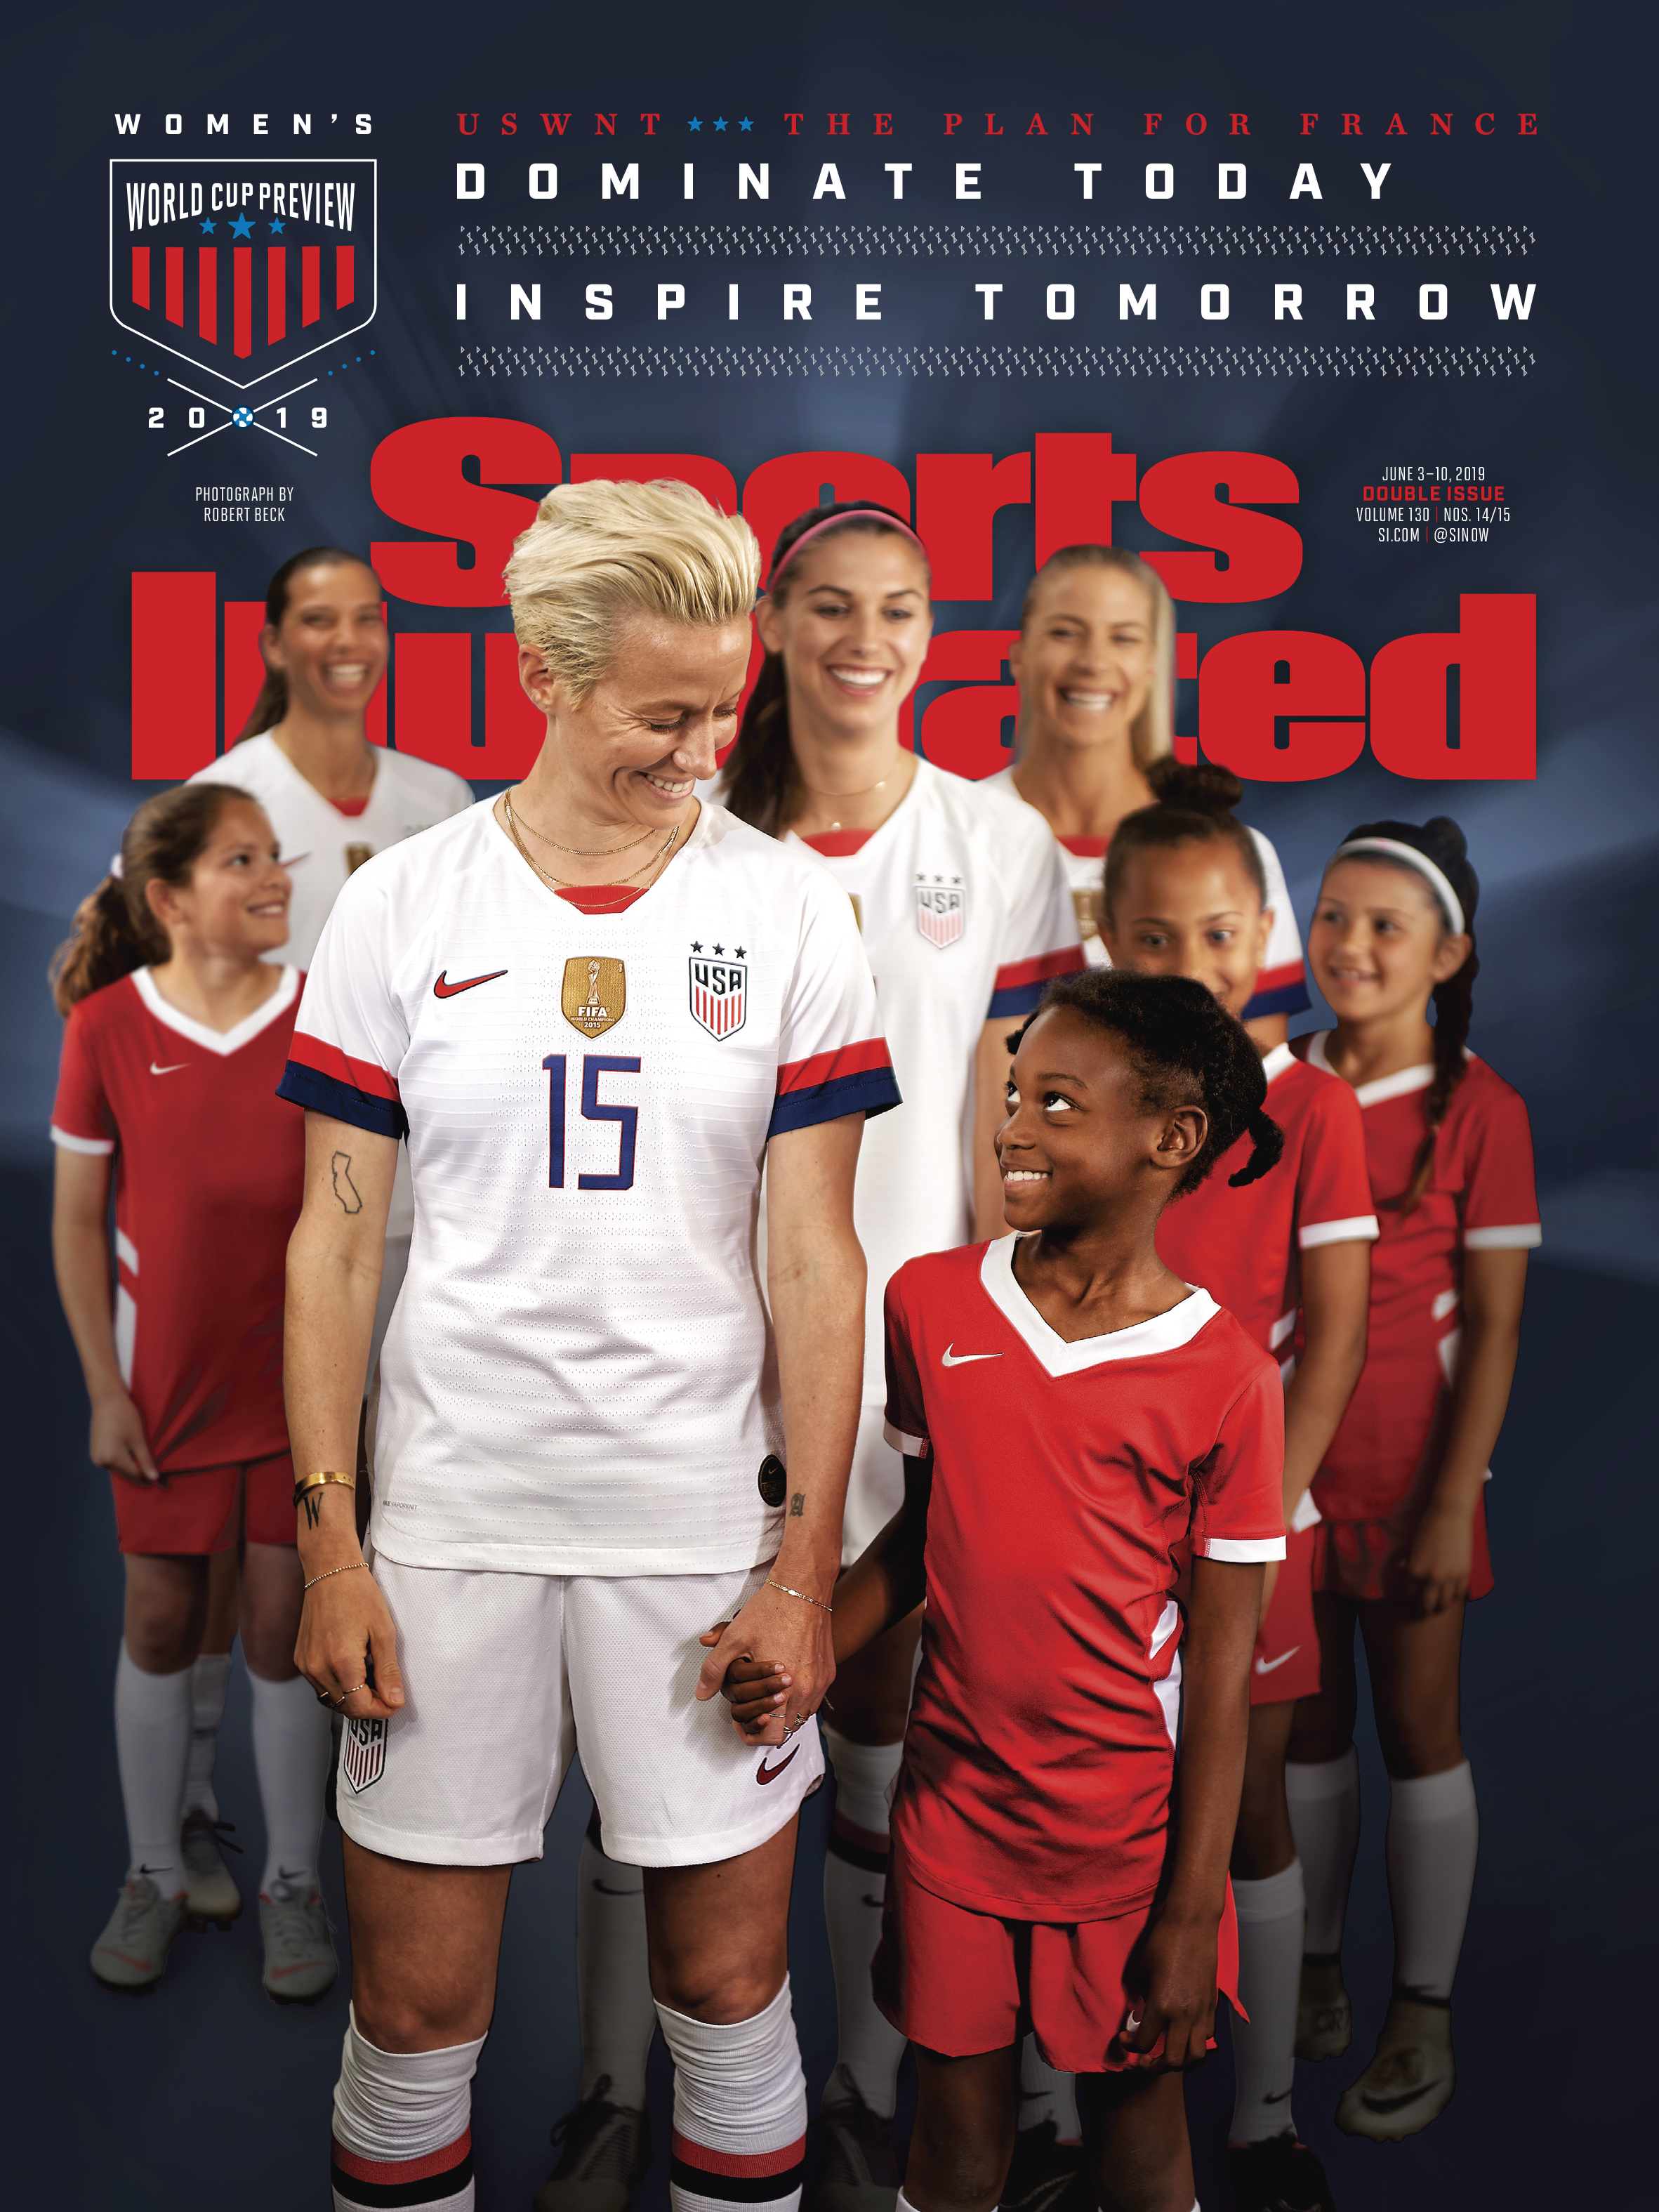 USWNT cover promo